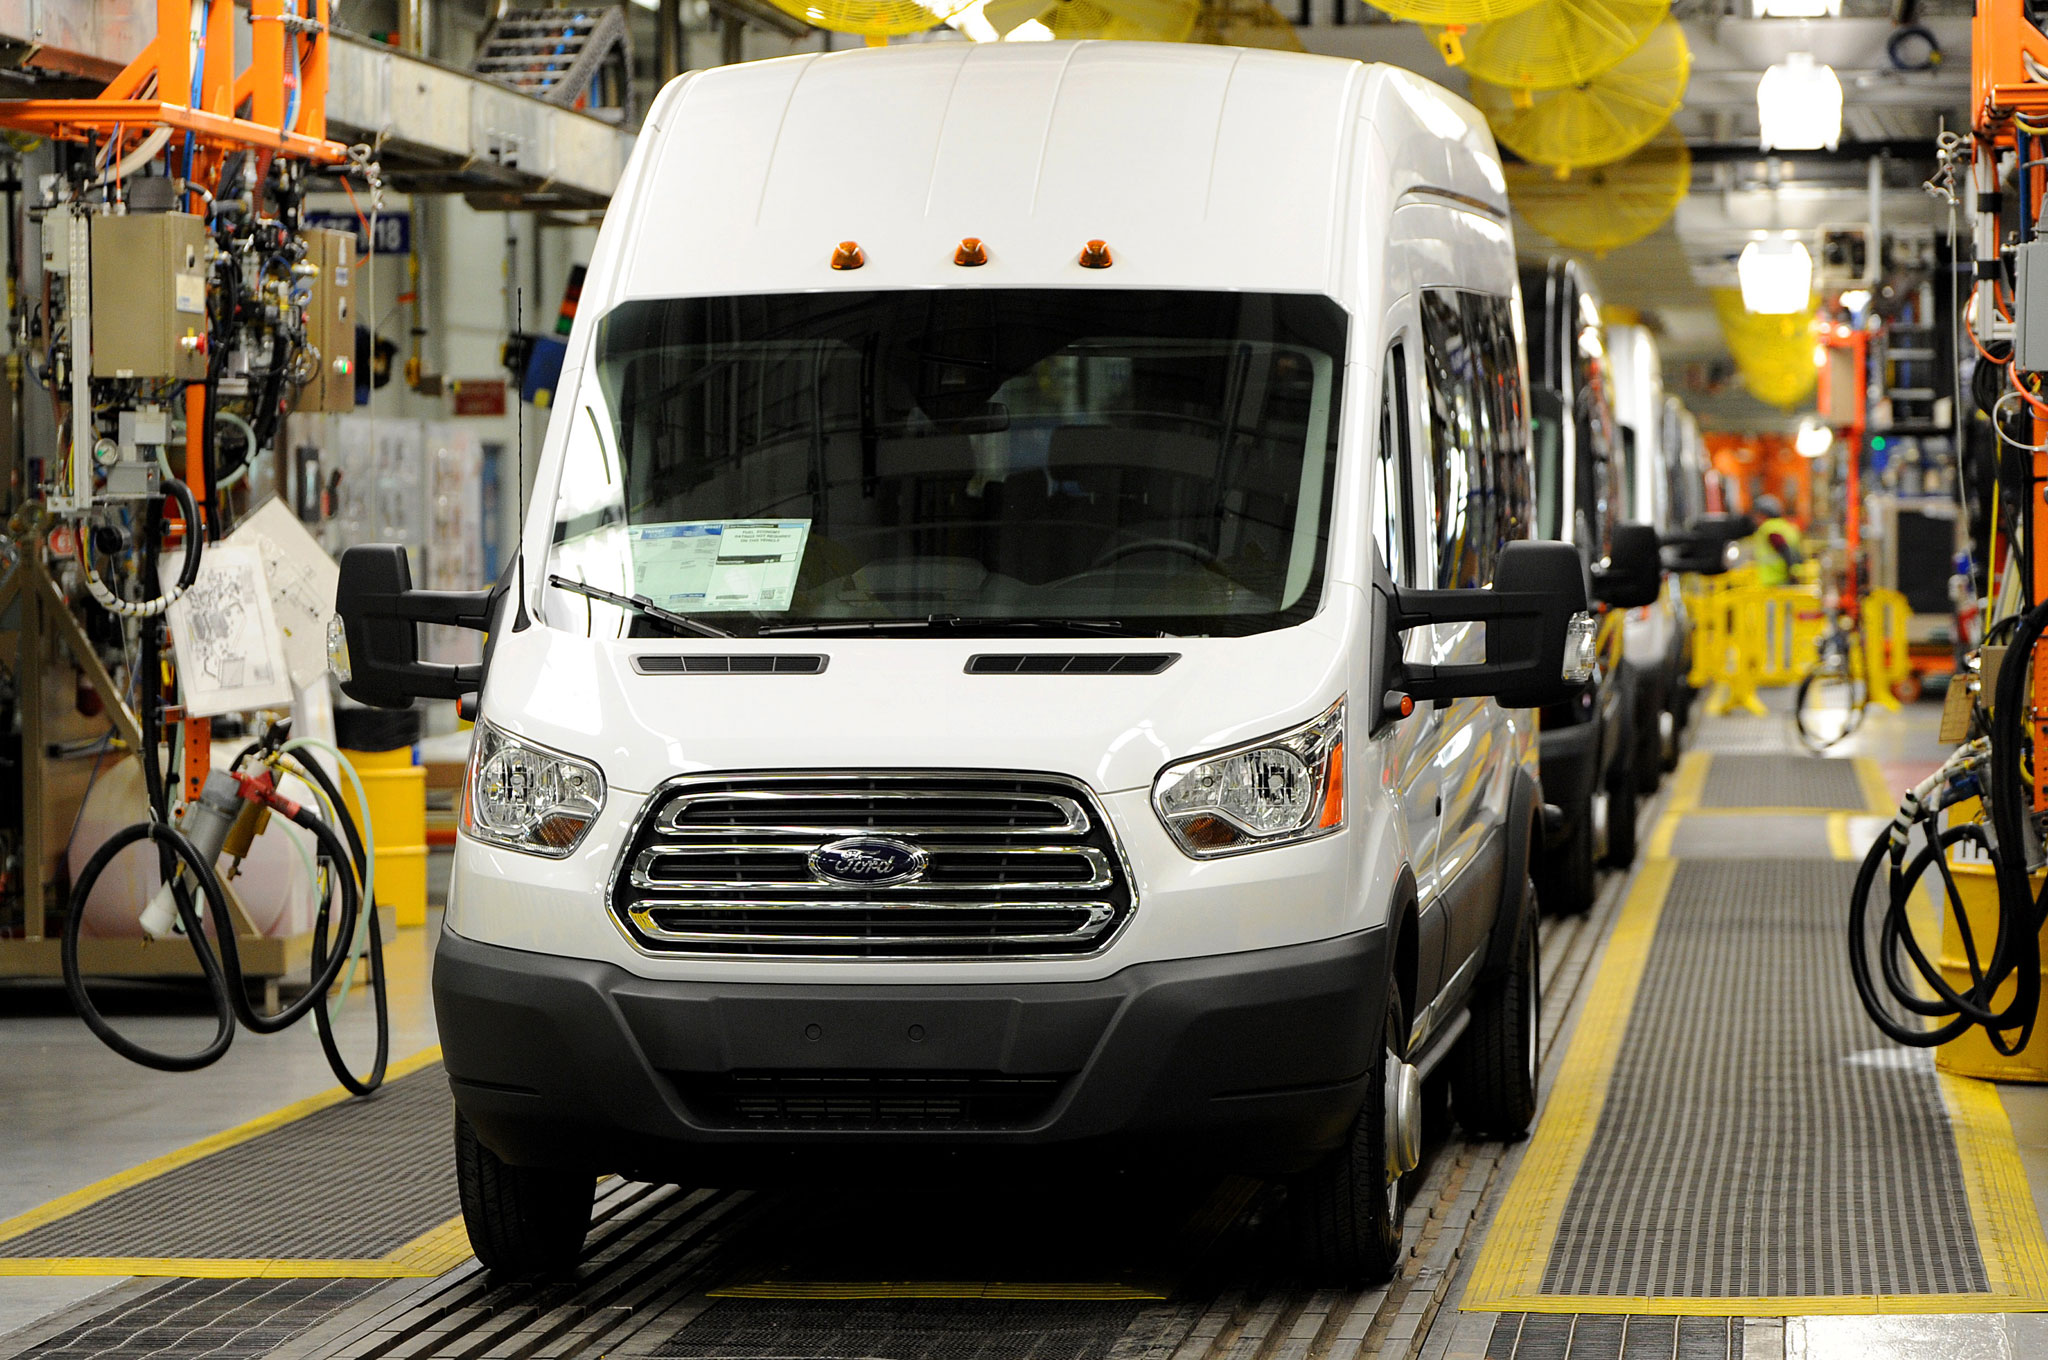 2015 Ford Transit Kansas City Assembly Plant Photo 11